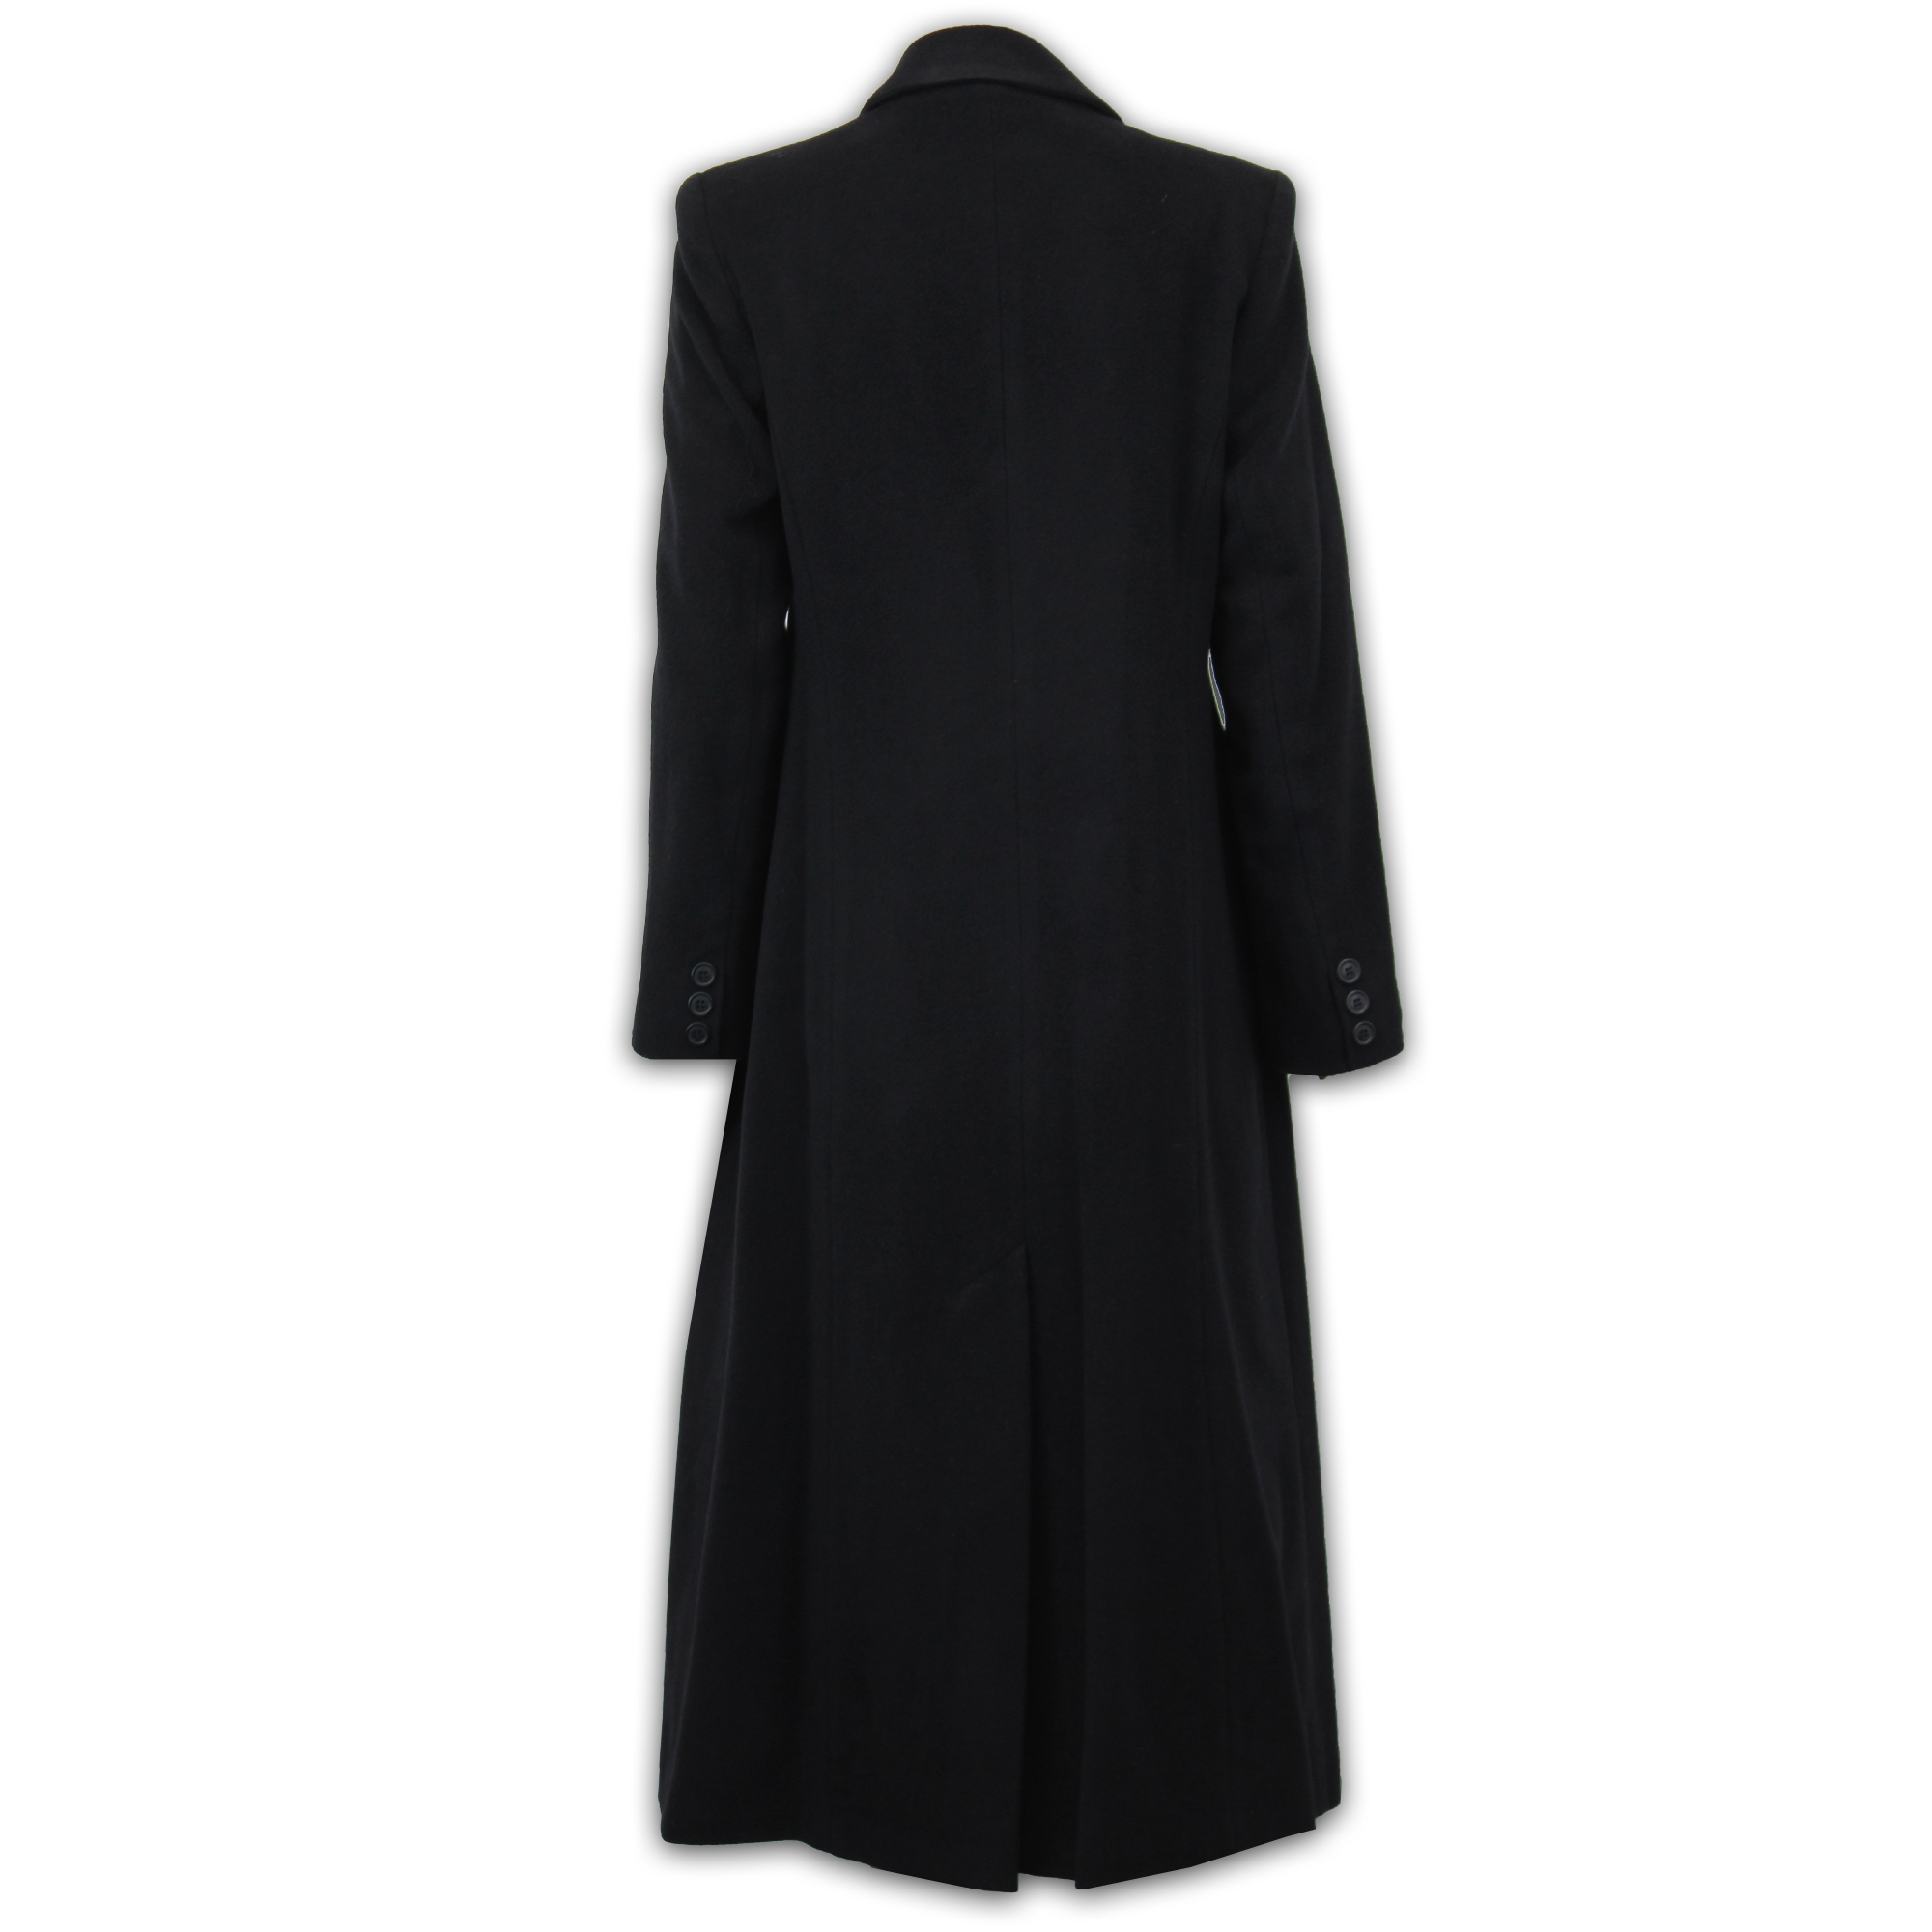 Ladies-Wool-Cashmere-Coat-Women-Jacket-Outerwear-Trench-Overcoat-Winter-Lined thumbnail 5